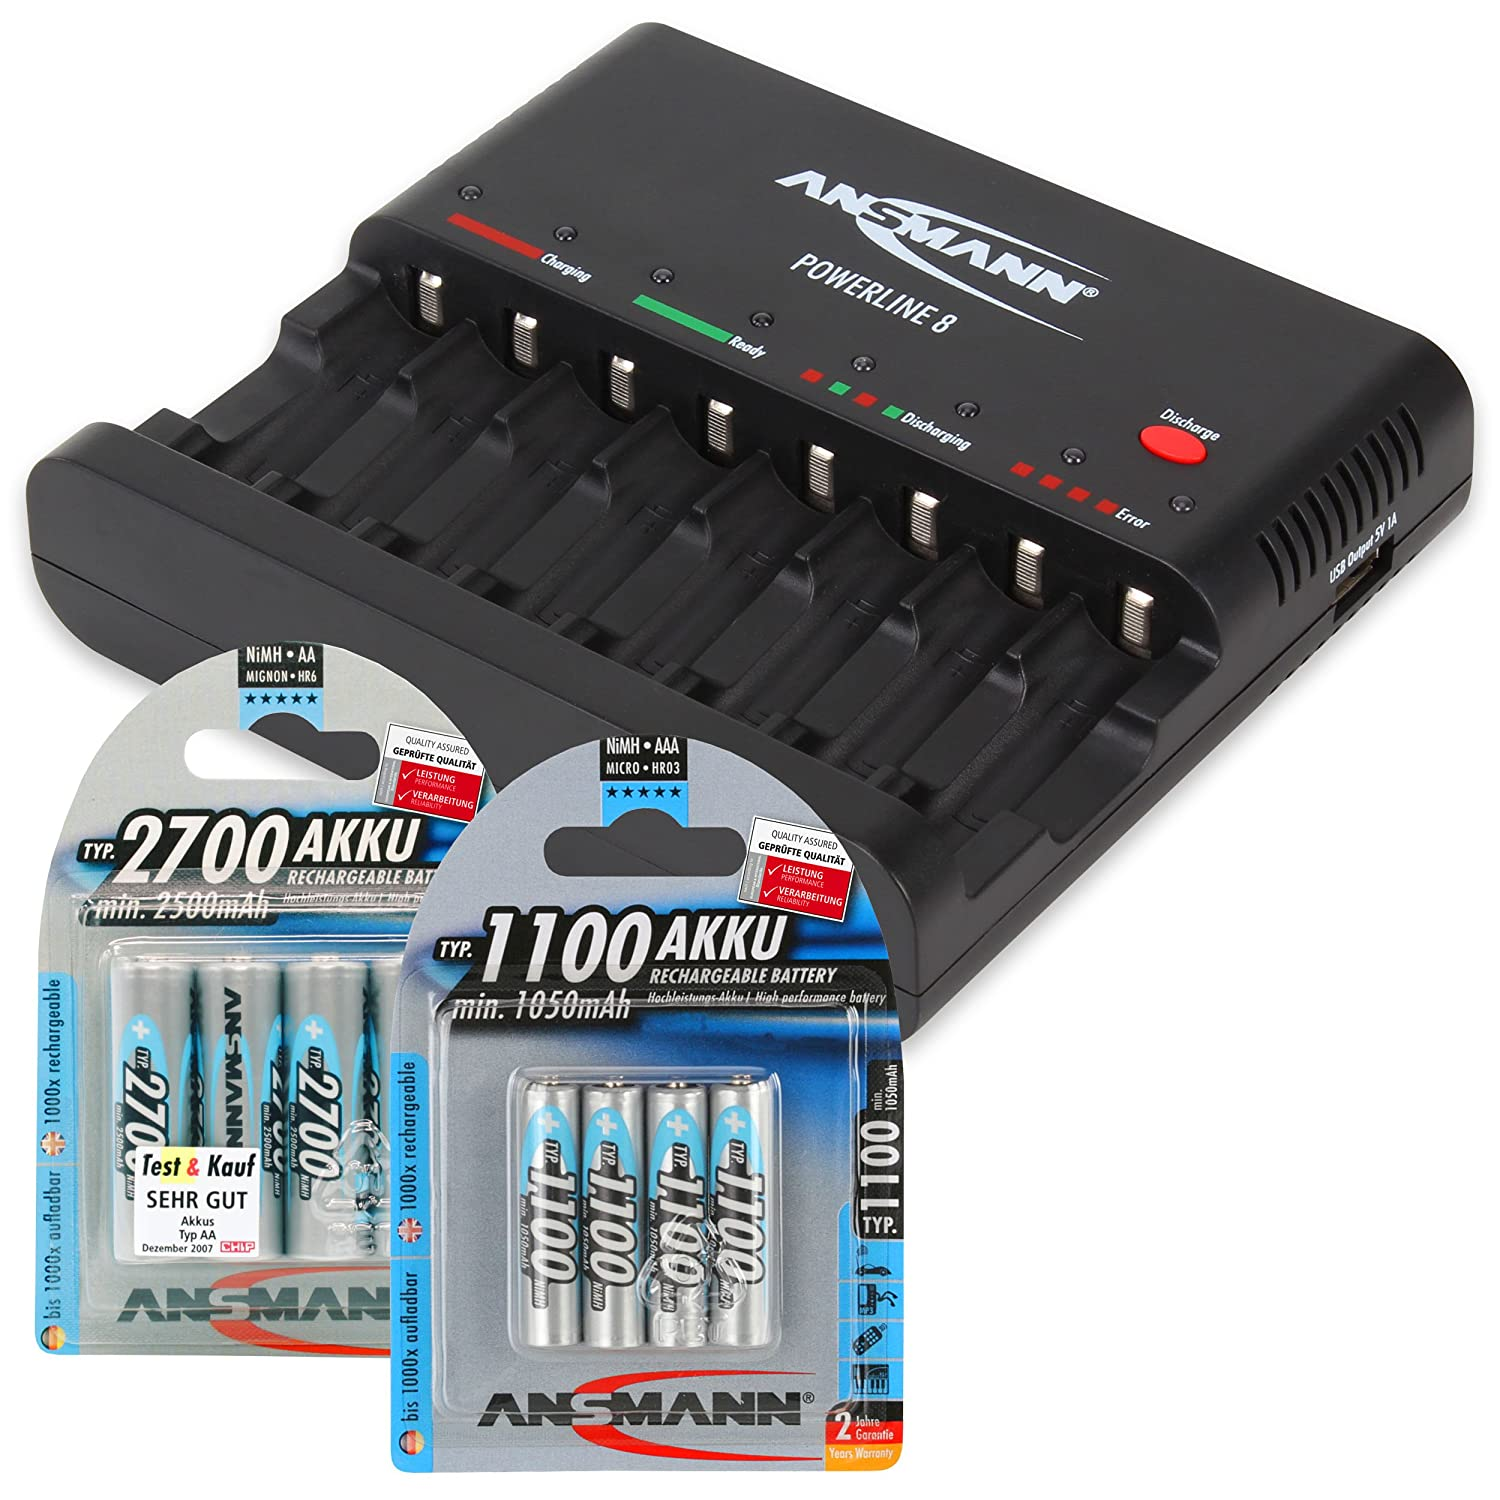 ANSMANN Individual cell battery charger Powerline 8 for NiMH rechargeable batteries AAA & AA with USB Port for Smartphone + 4-Pack 2700mAh double A & 4-Pack 1100mAh tripple A batteries Ansmann USA Corporation 1001-0006-UK-590-5